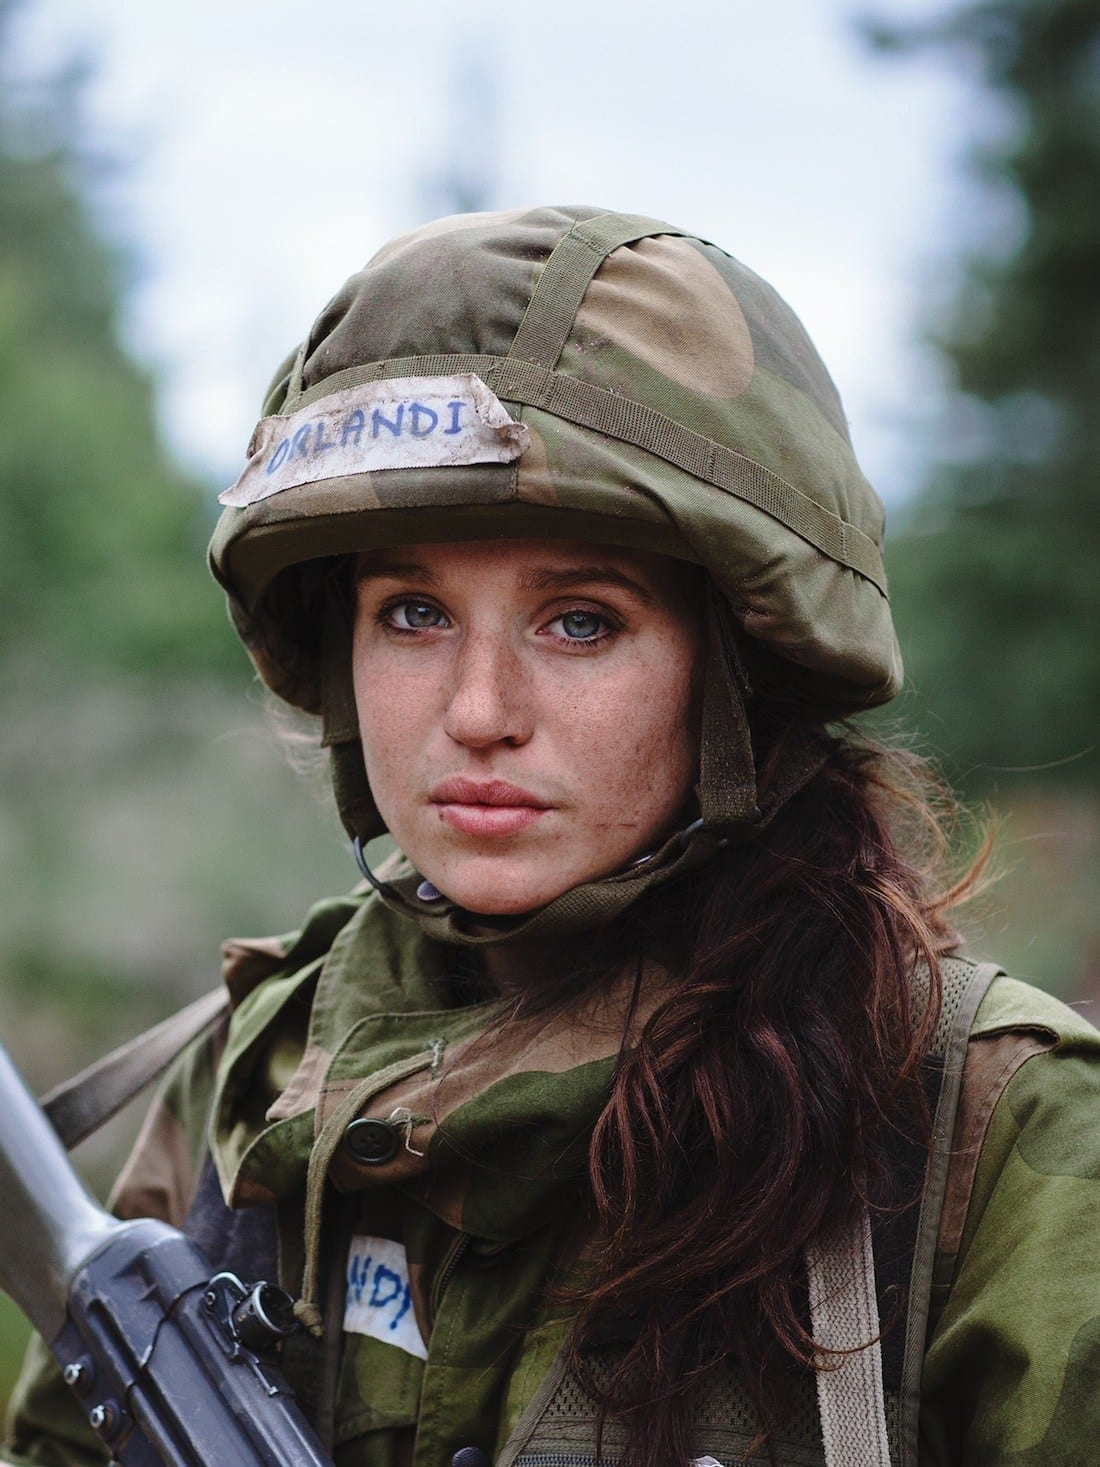 Top 10 Countries with Most Beautiful Women Soldiers in World